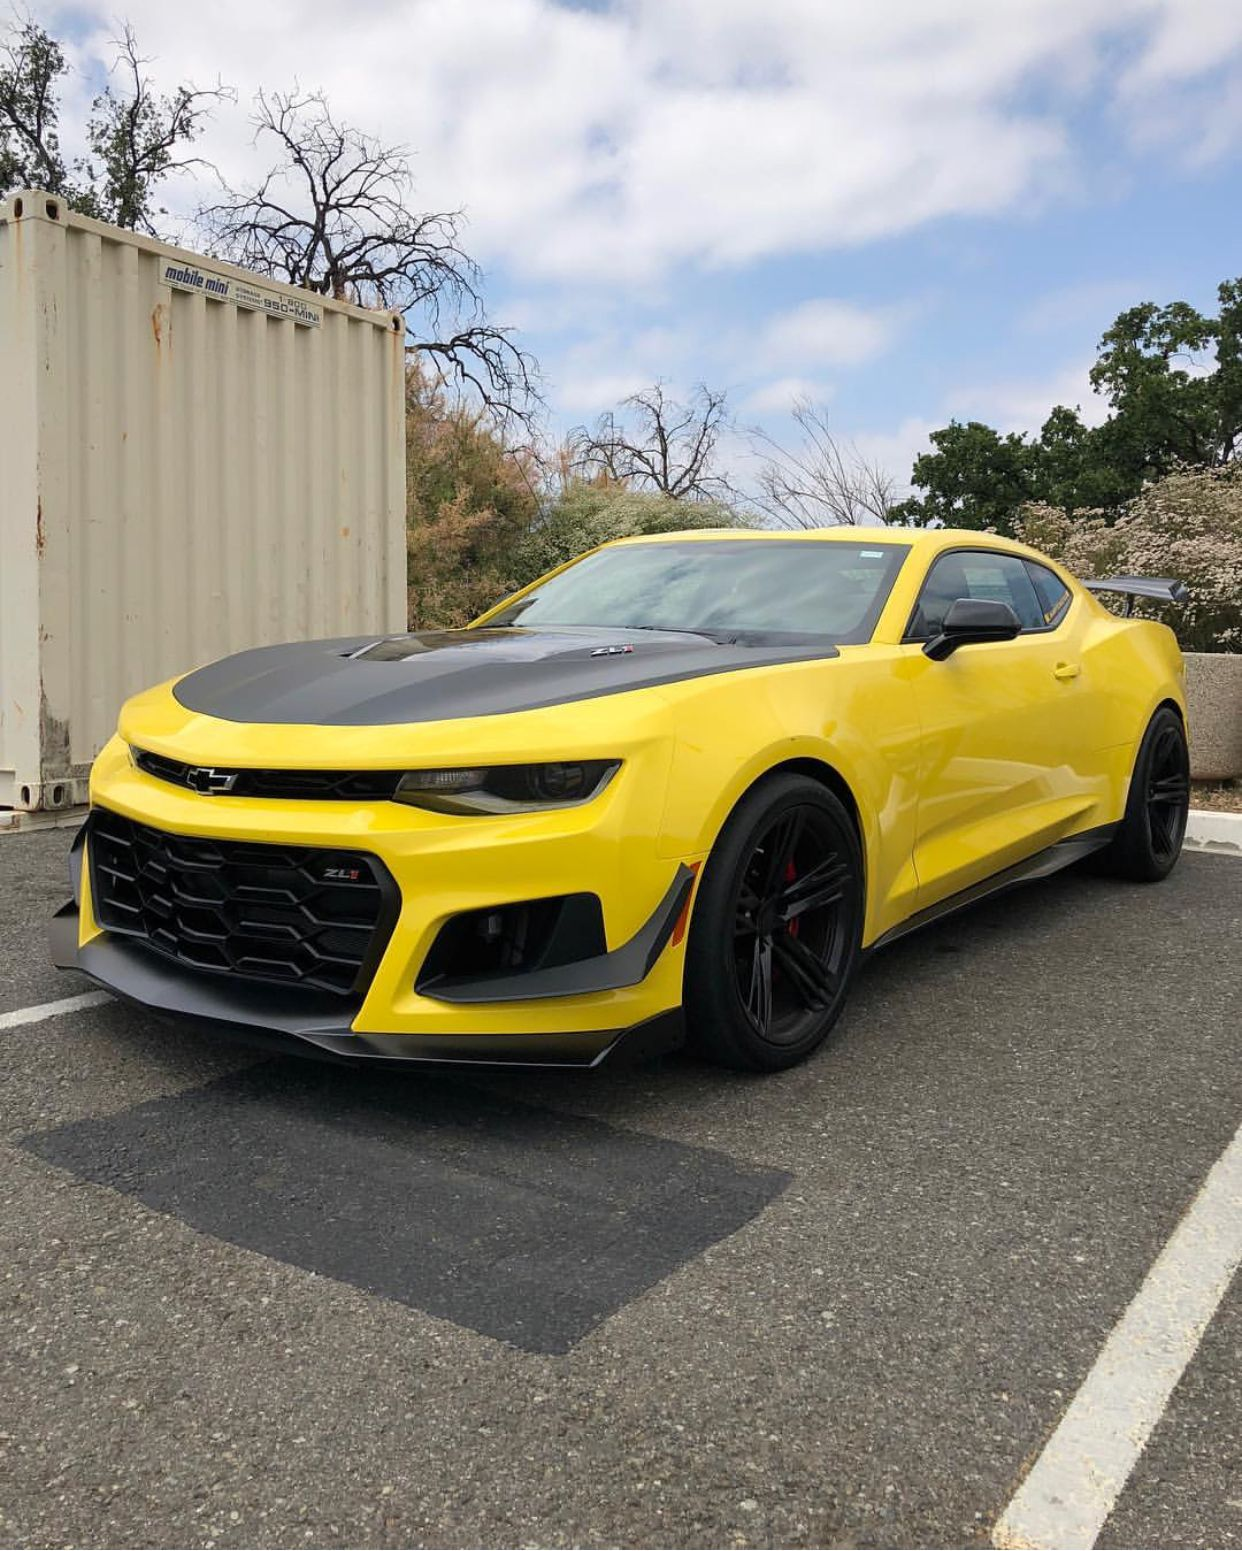 Chevrolet Camaro Zl1 1le Painted In Bright Yellow Photo Taken By Theoctanearmy On Instagram Owned By Mojave Ra Chevrolet Camaro Camaro Zl1 Yellow Camaro